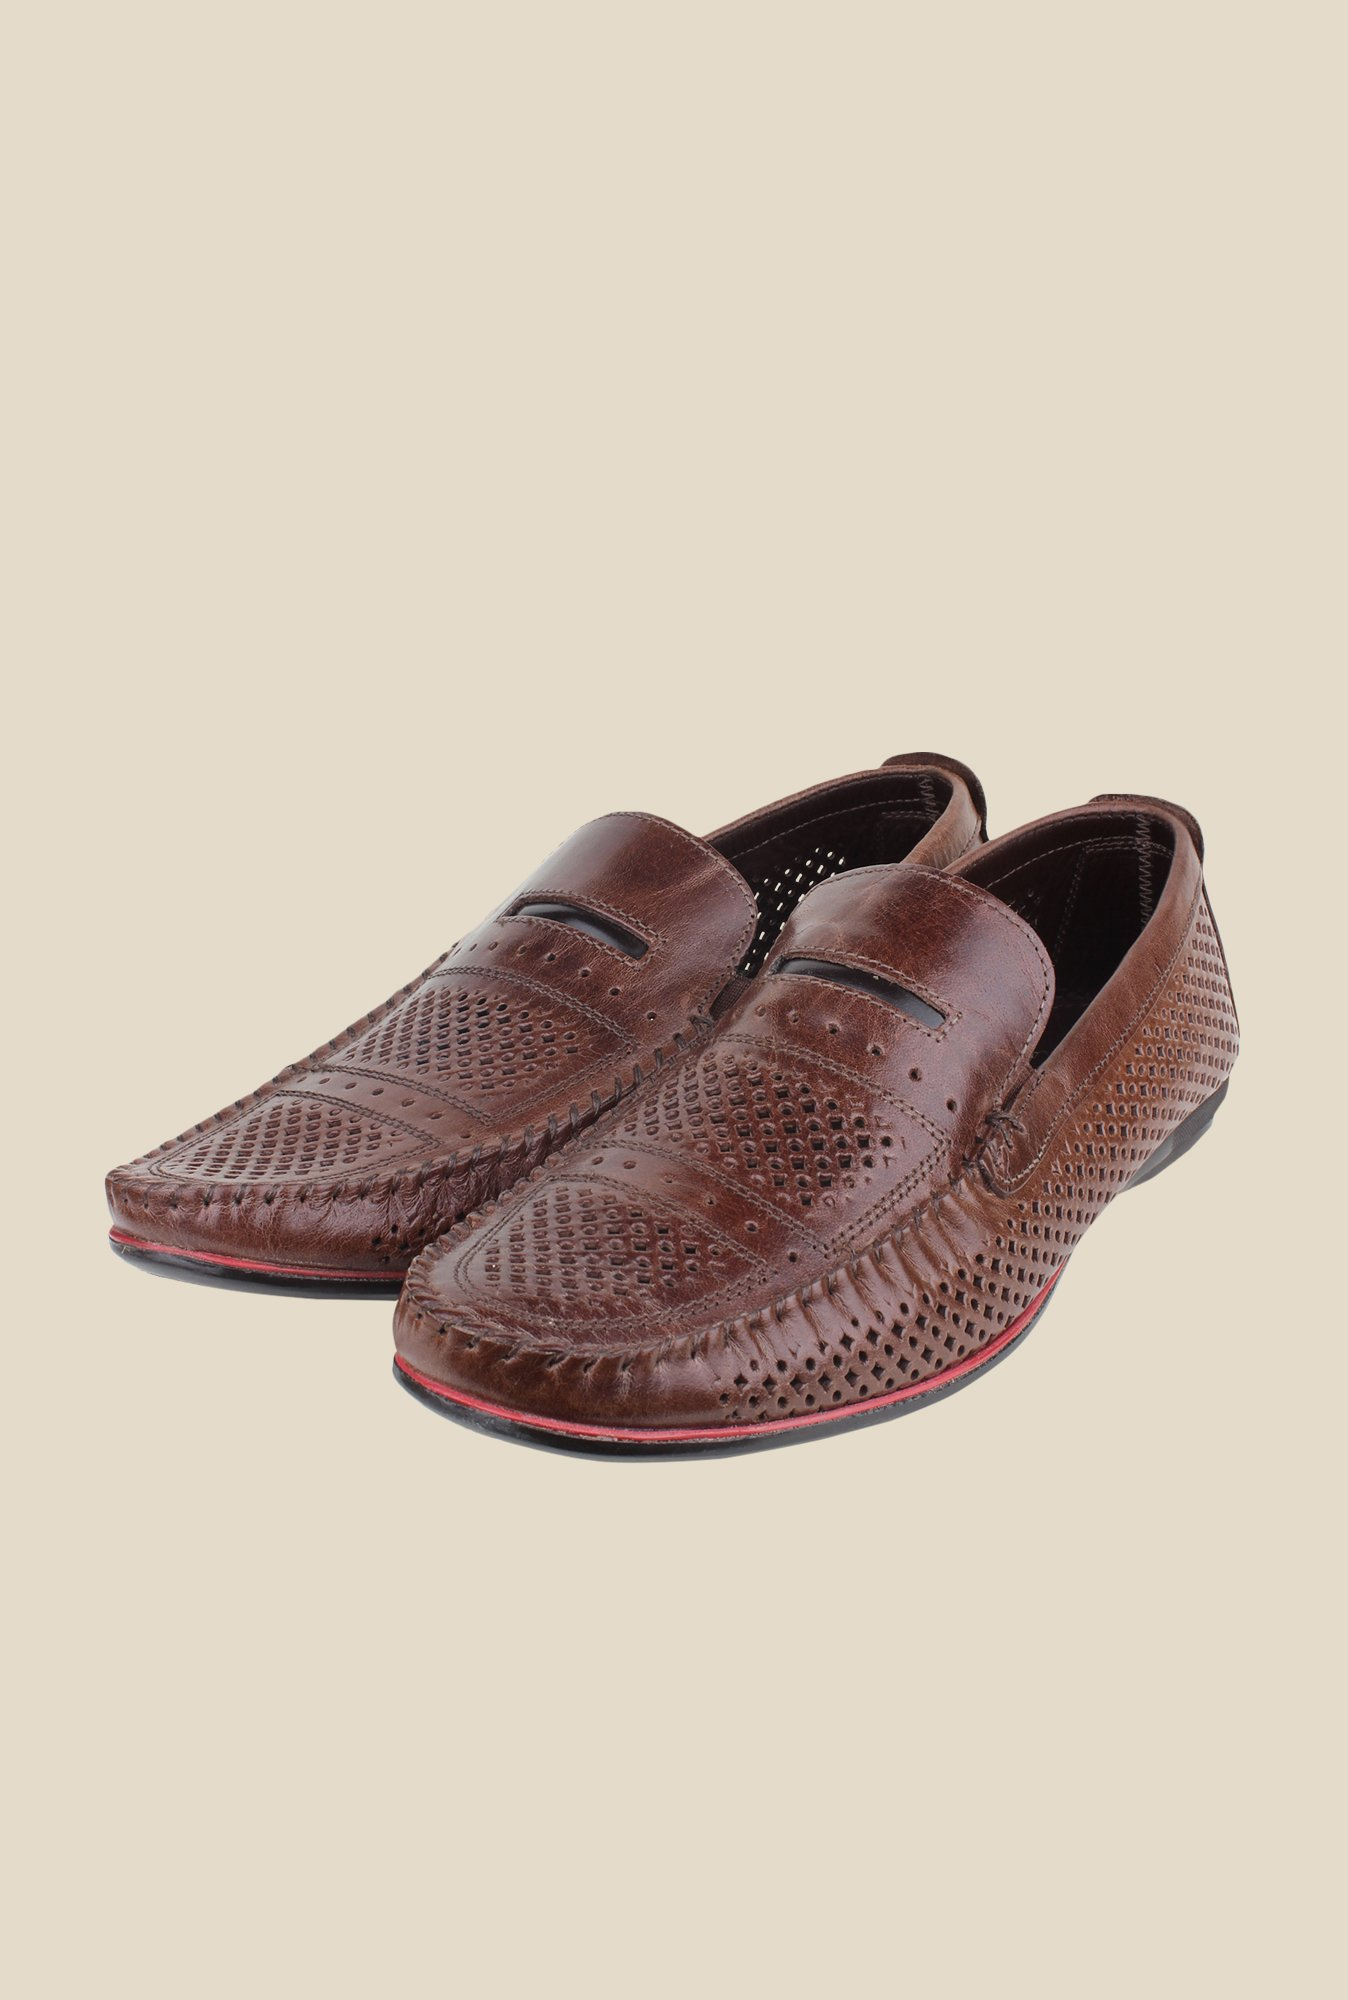 Red Tape Brown Leather Slip-Ons